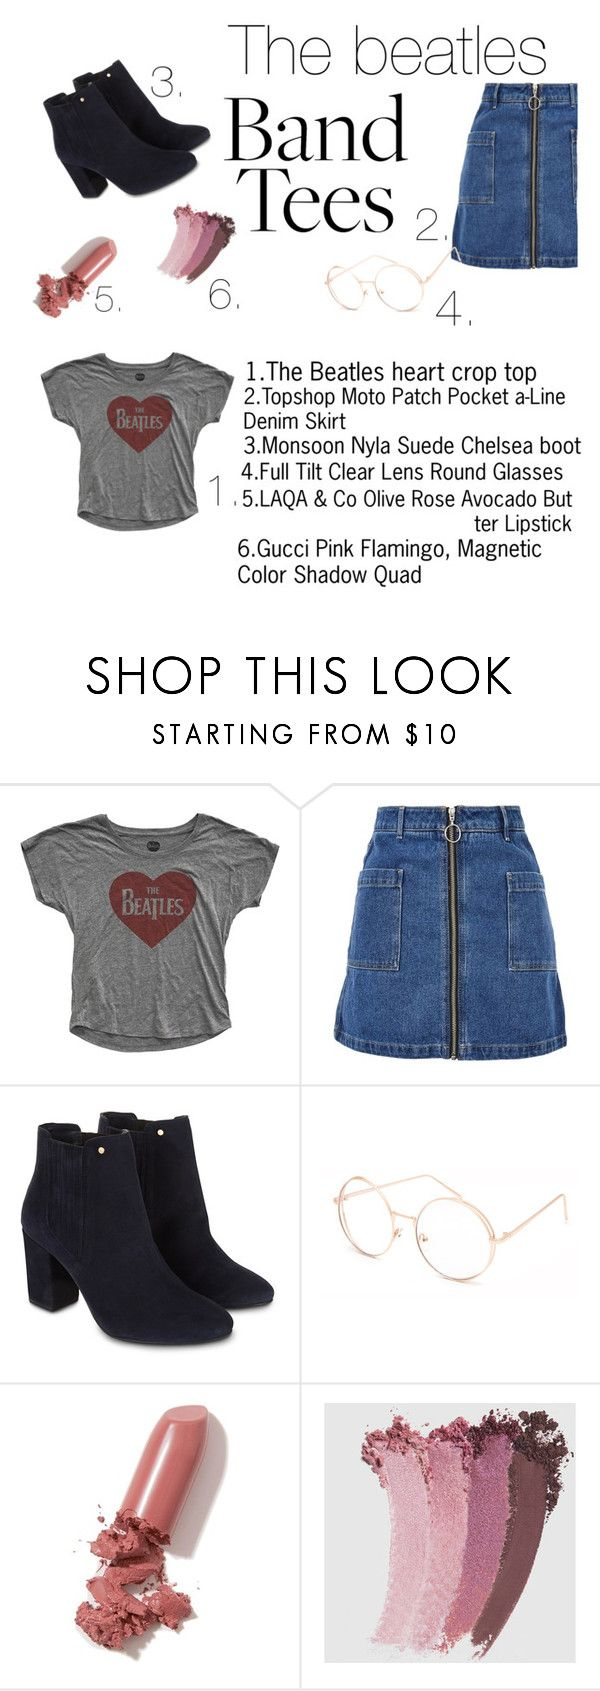 """""""The Beatles - Band Tees -"""" by valeriasanchez45 ❤ liked on Polyvore featuring Topshop, Monsoon, Full Tilt, LAQA & Co. and Gucci"""